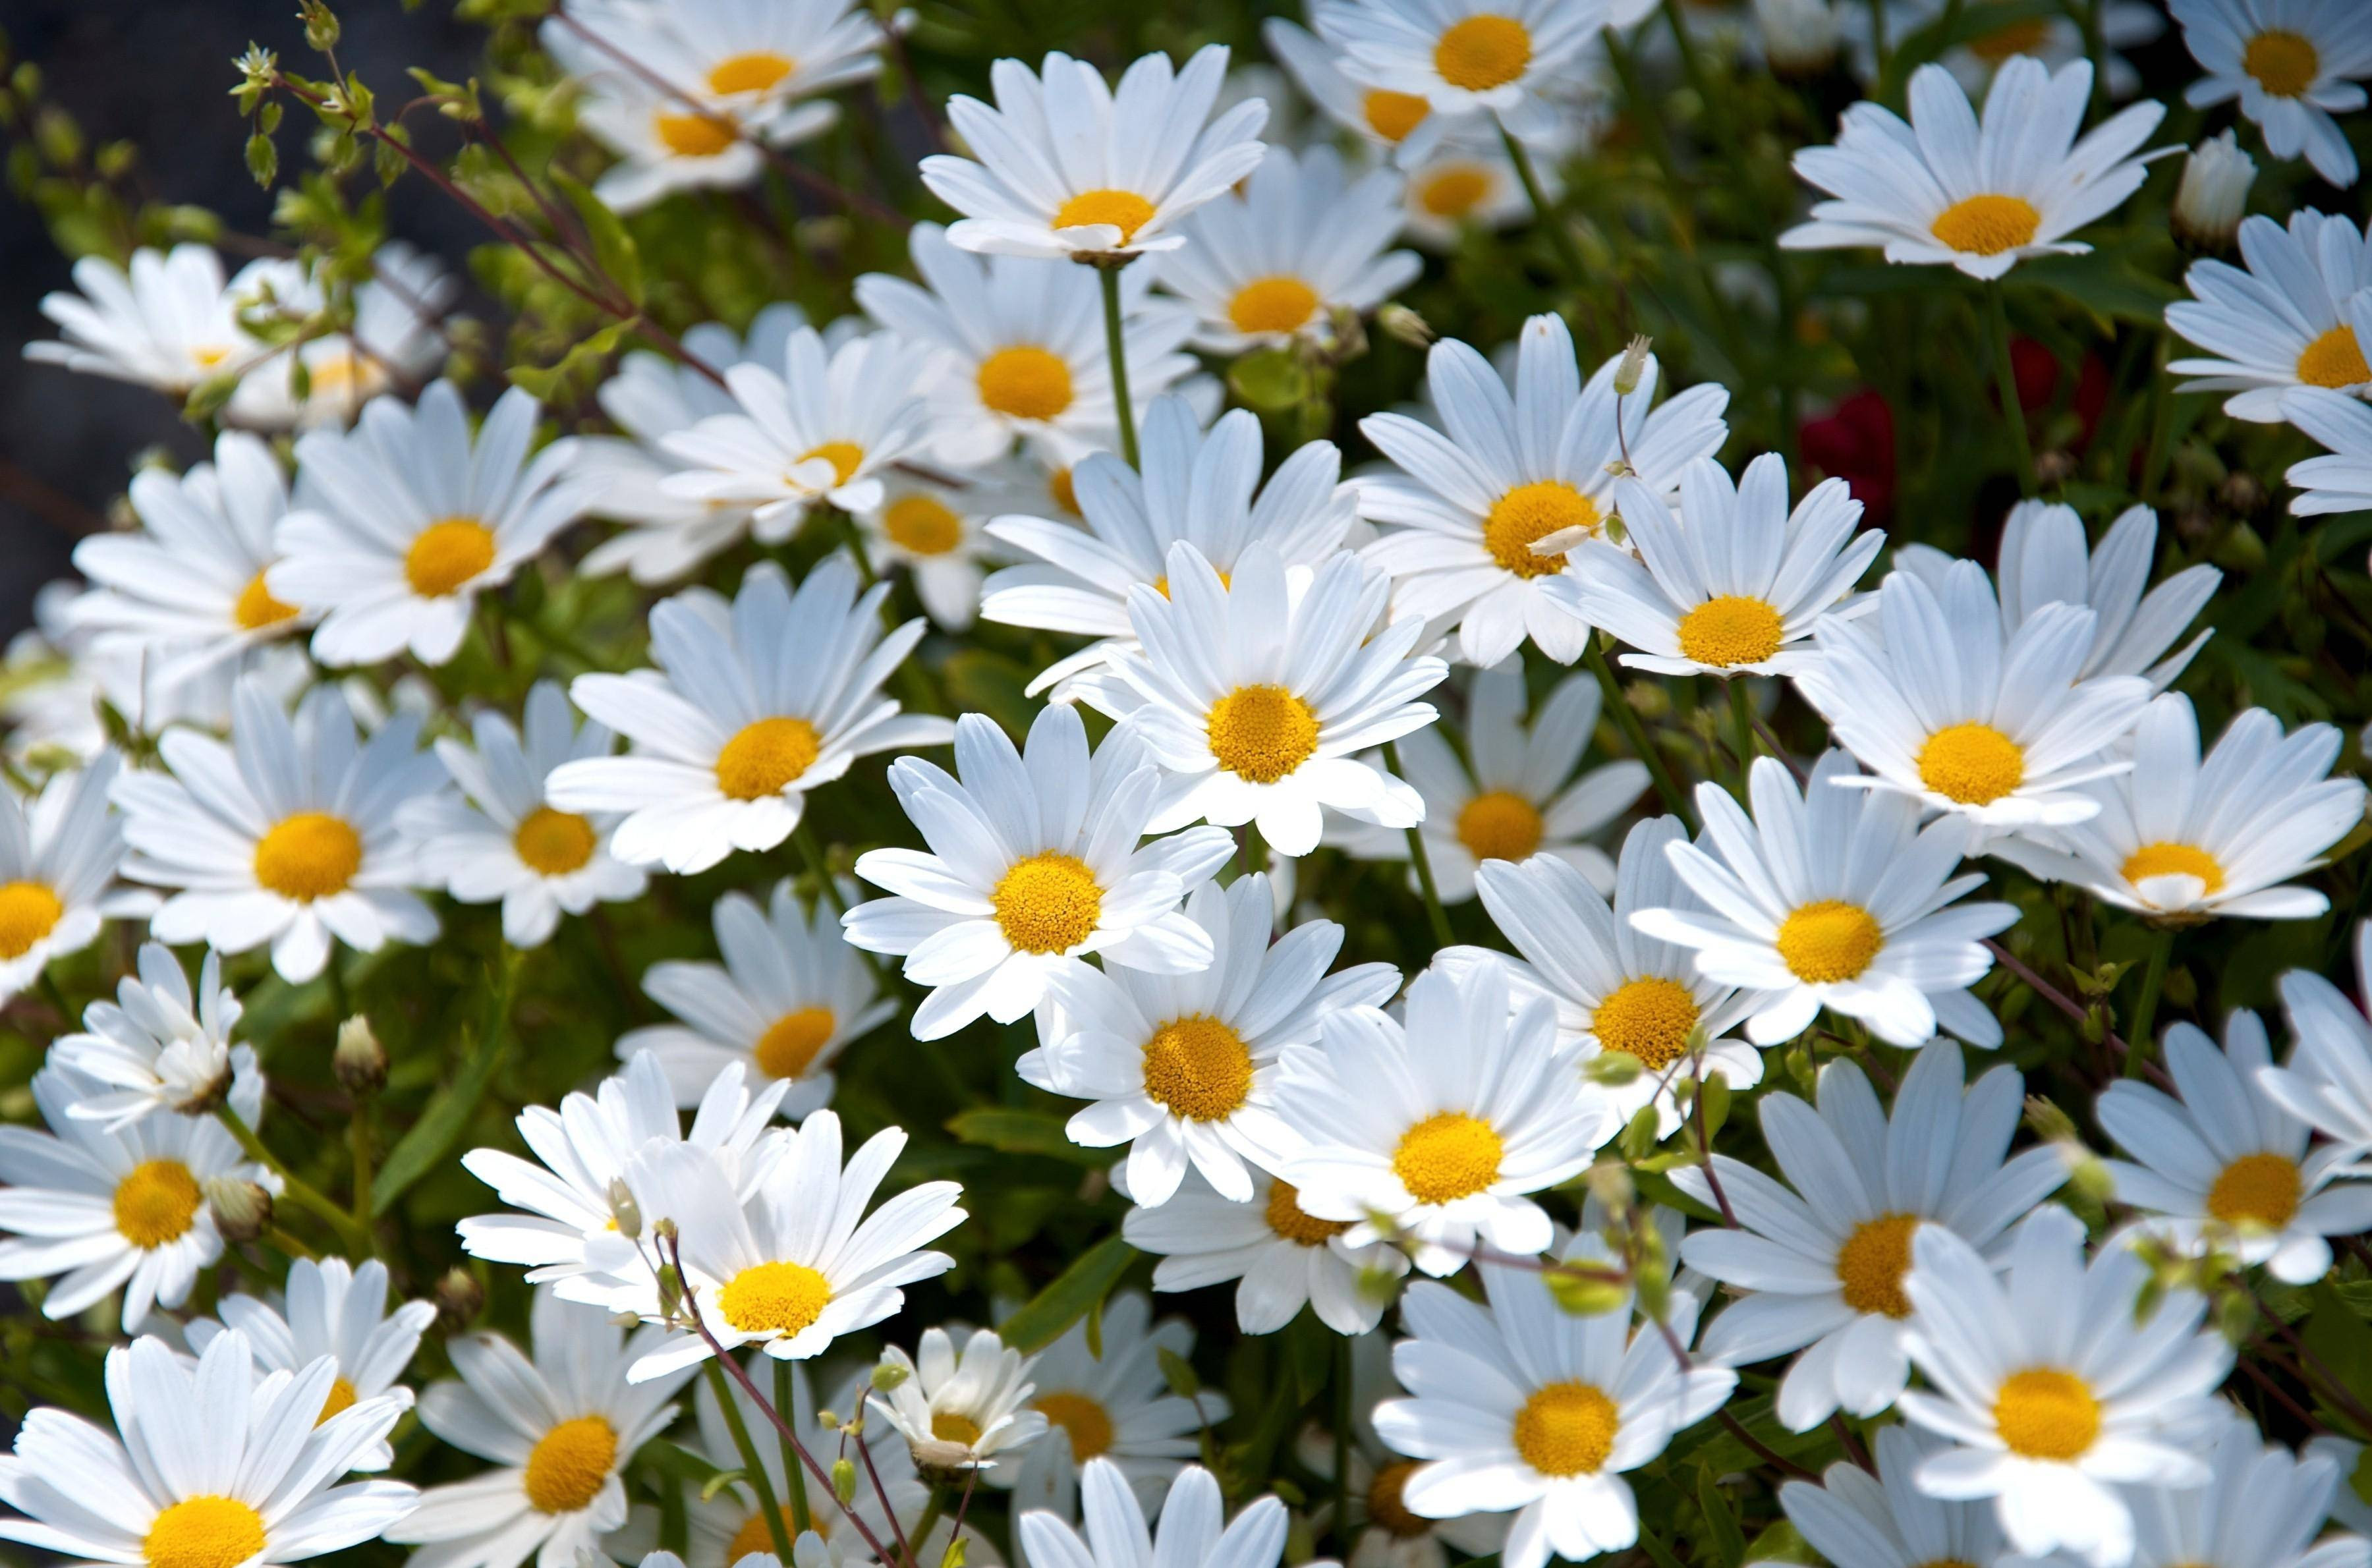 Daisy Wallpapers - Wallpaper Cave